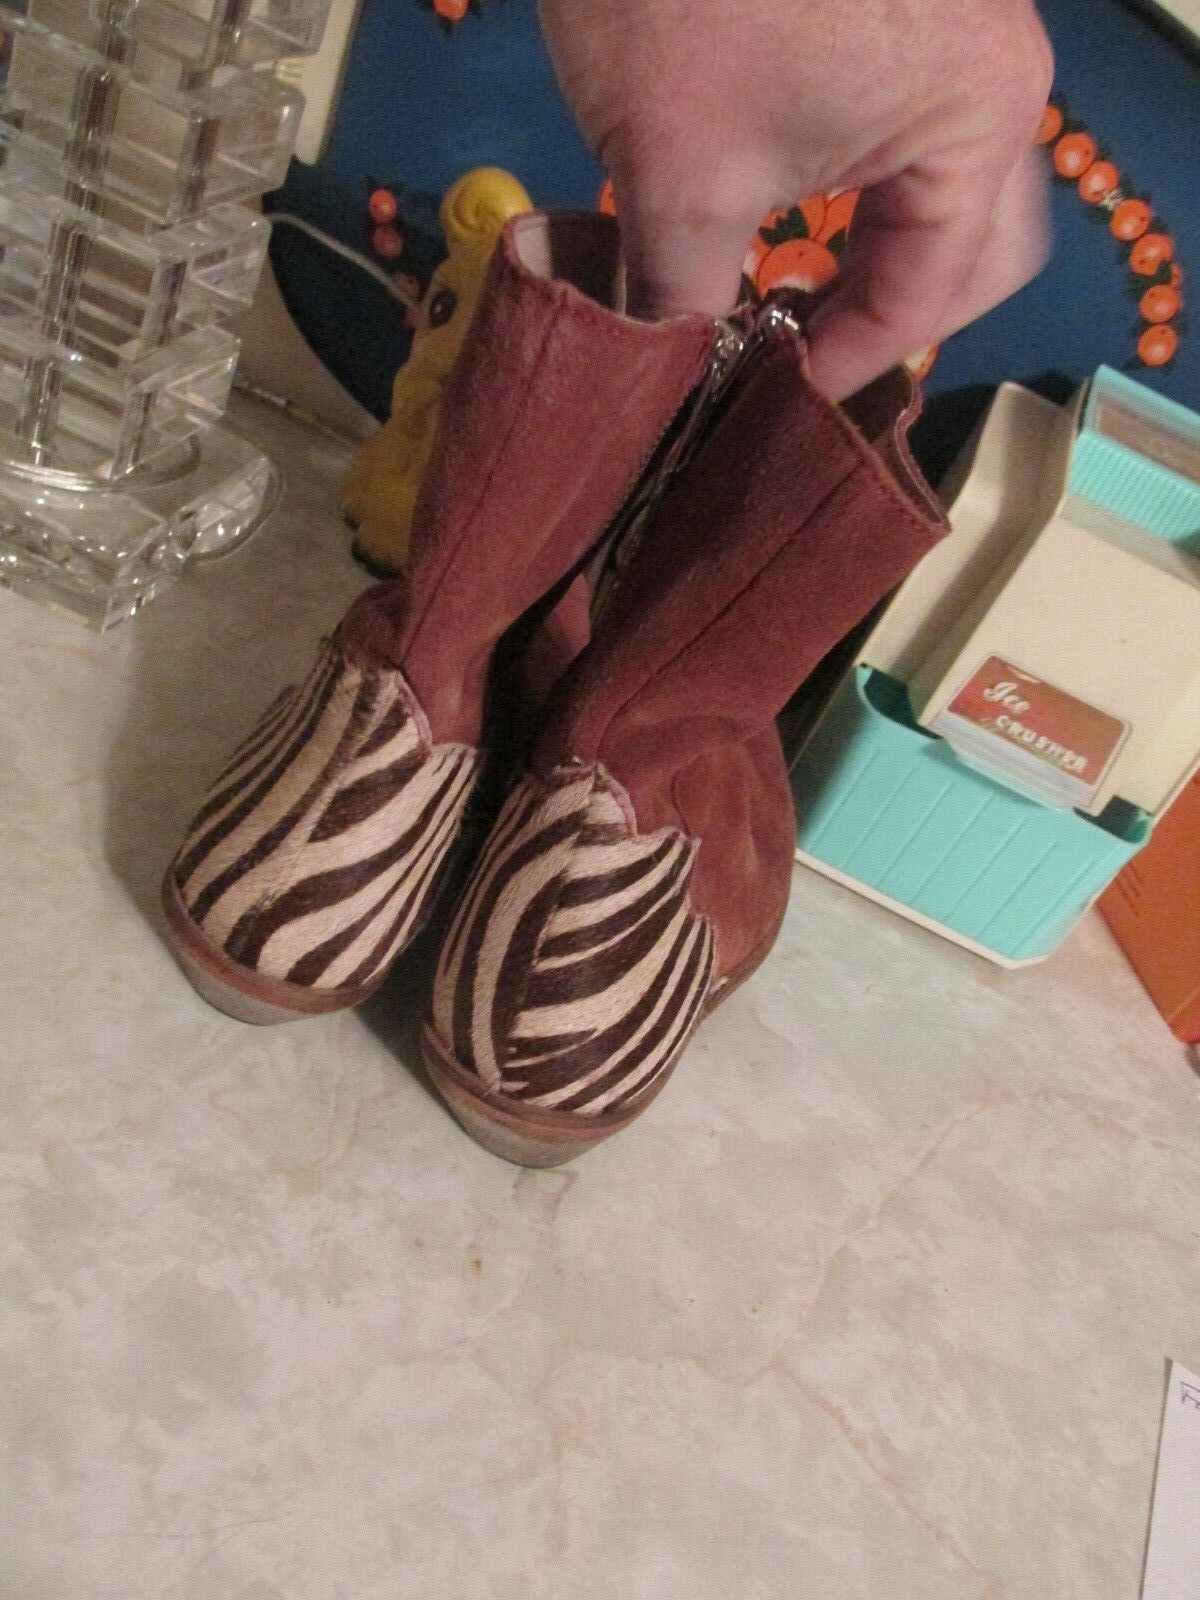 Free People Rust Suede Zebra Calf Hair Heel Last Outlaw Outlaw Outlaw Ankle Boots Size 37 7 0e2611